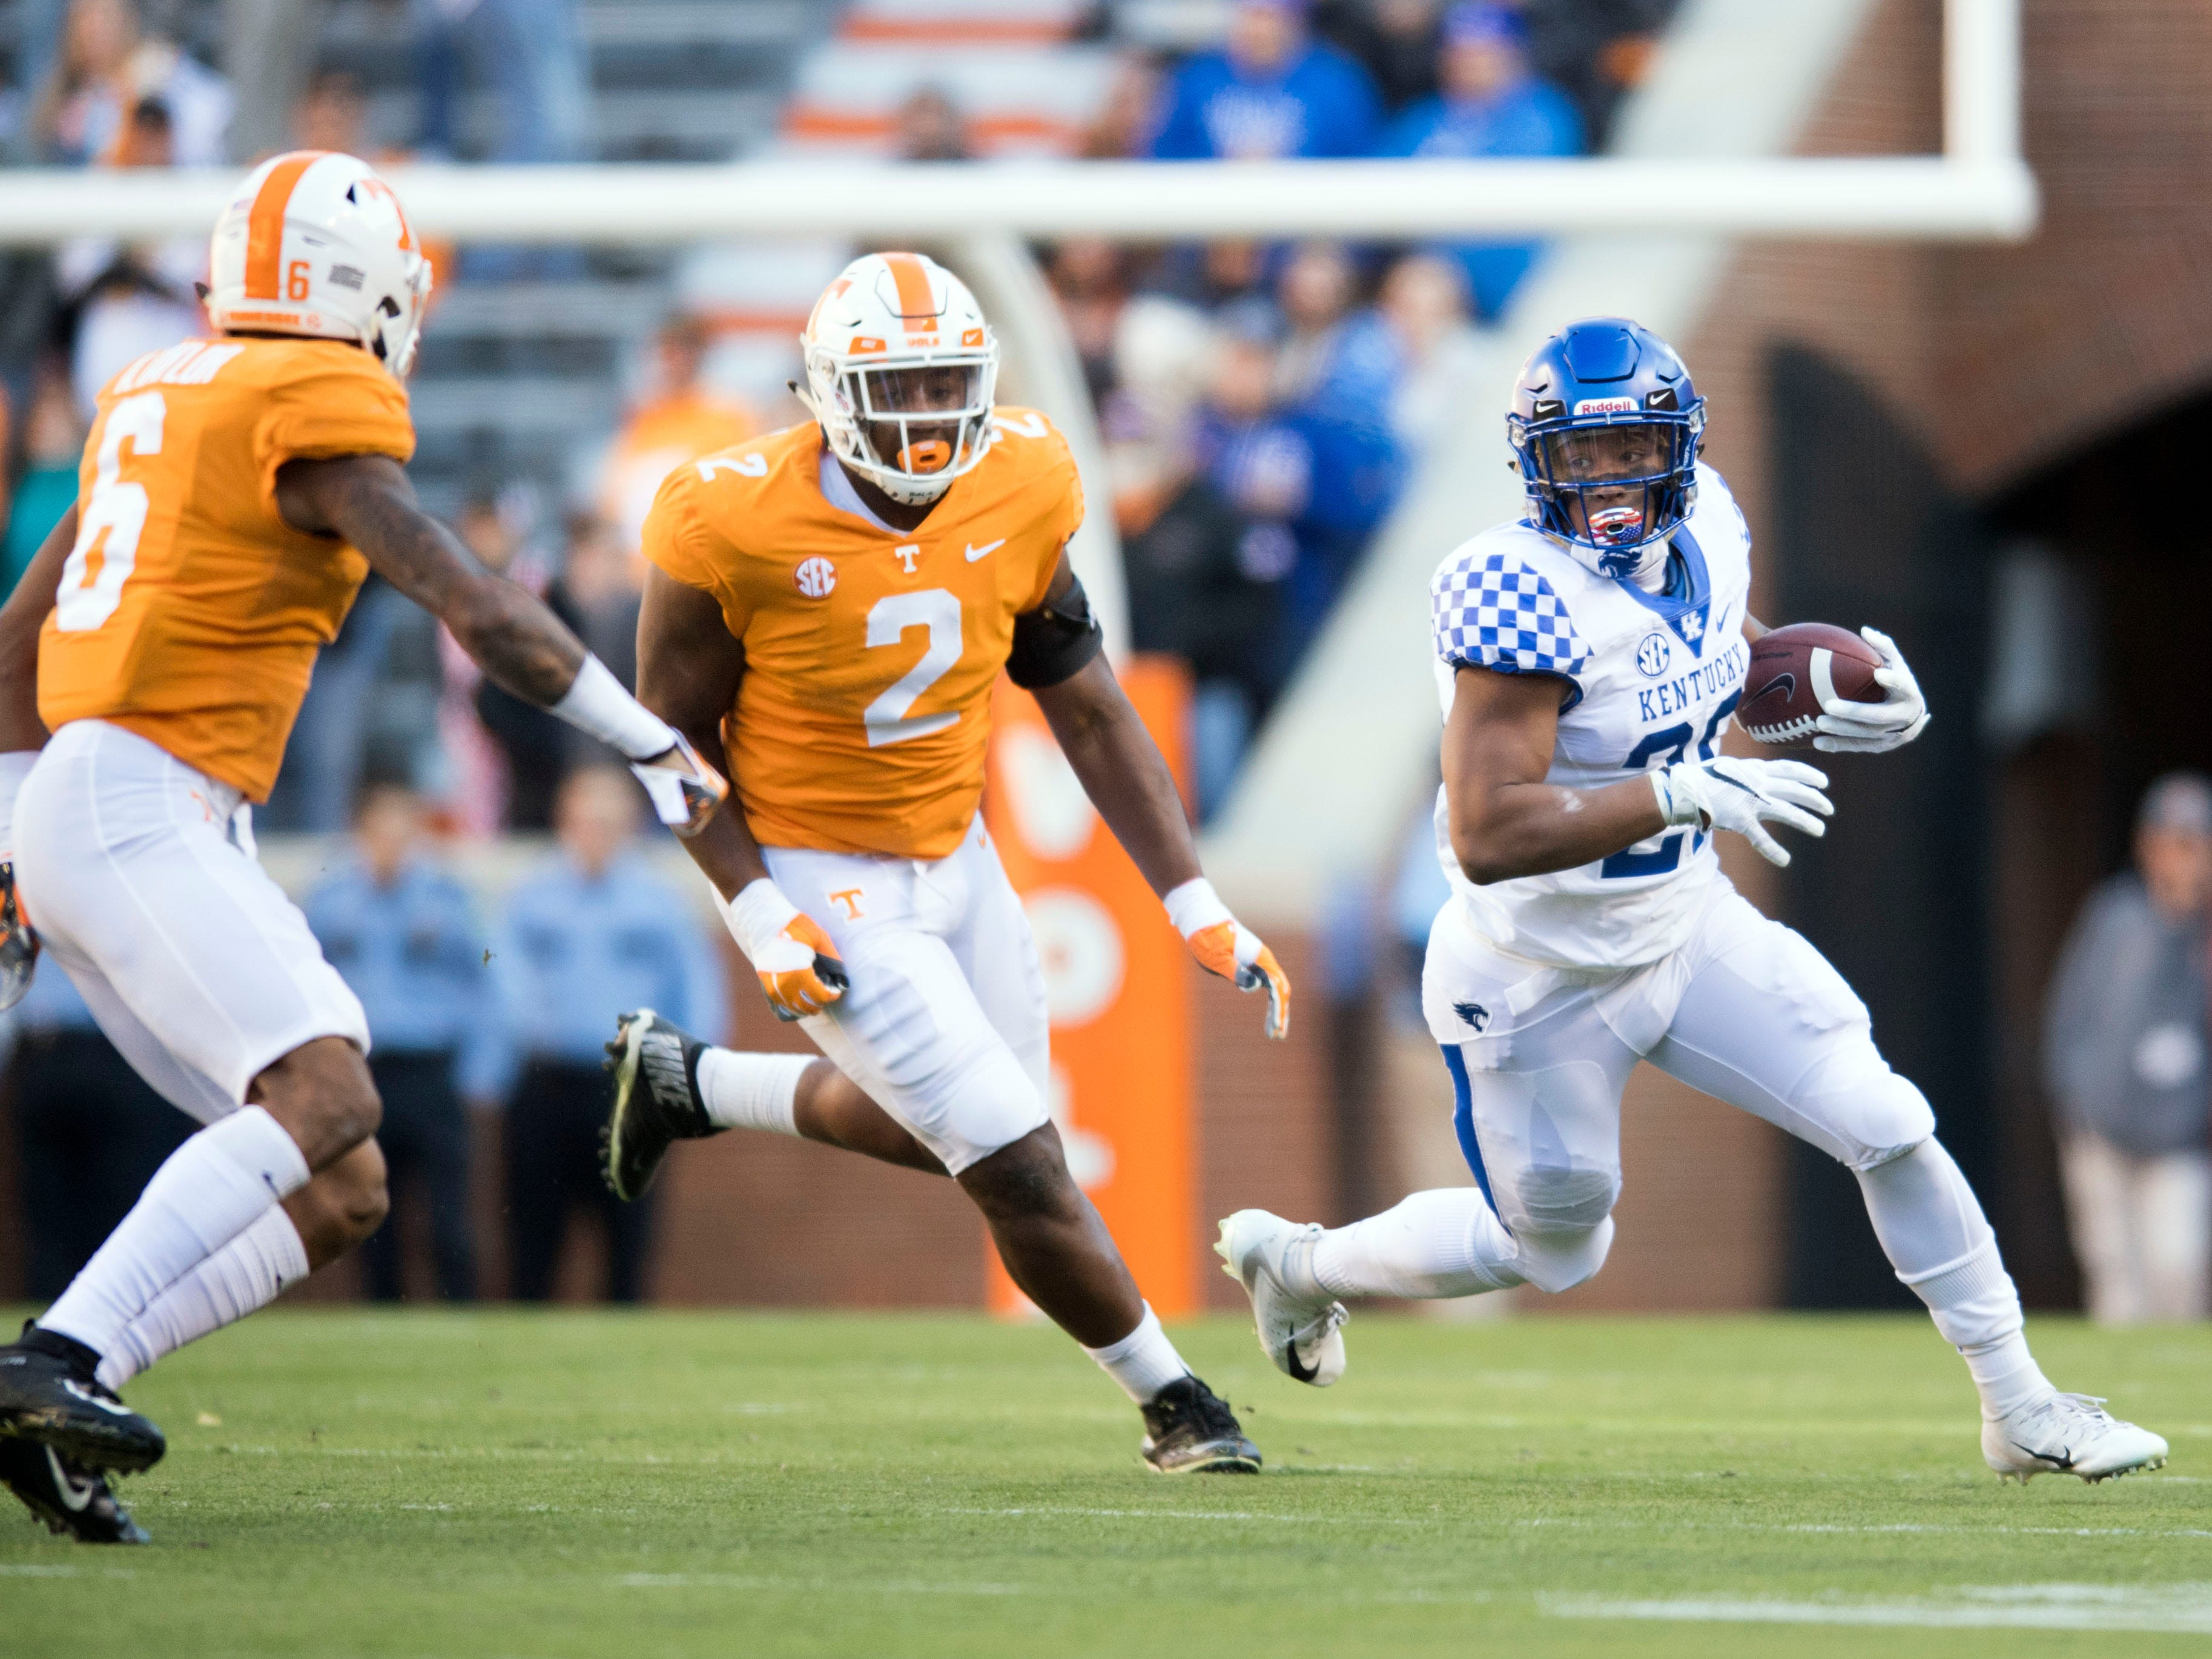 UT Vols' victory over Kentucky could be start of something big